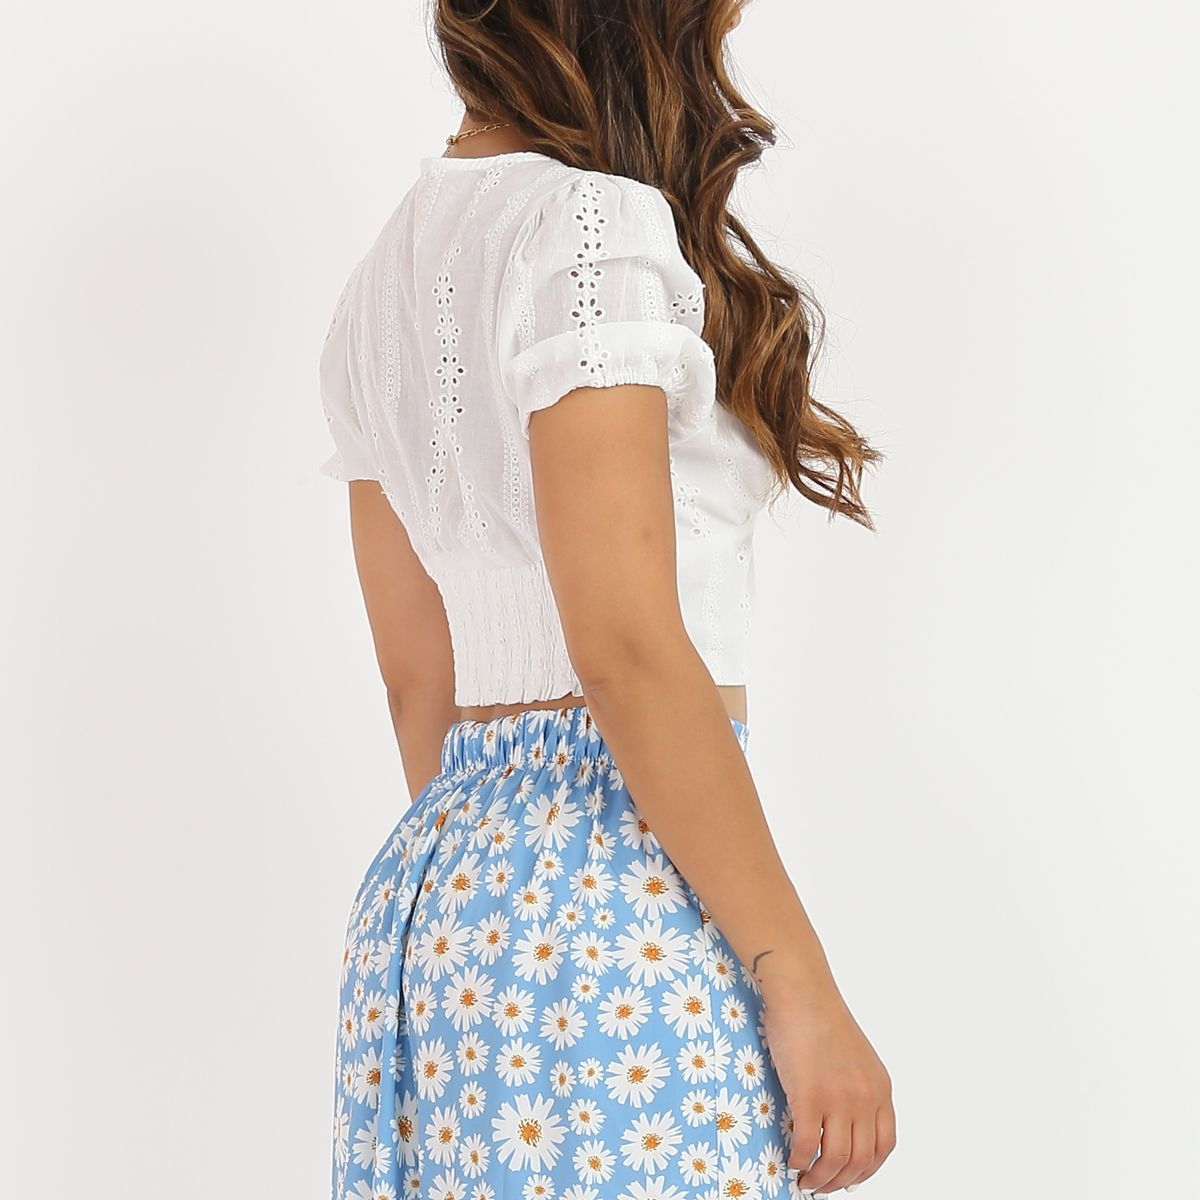 Crop top blanc à broderie anglaise